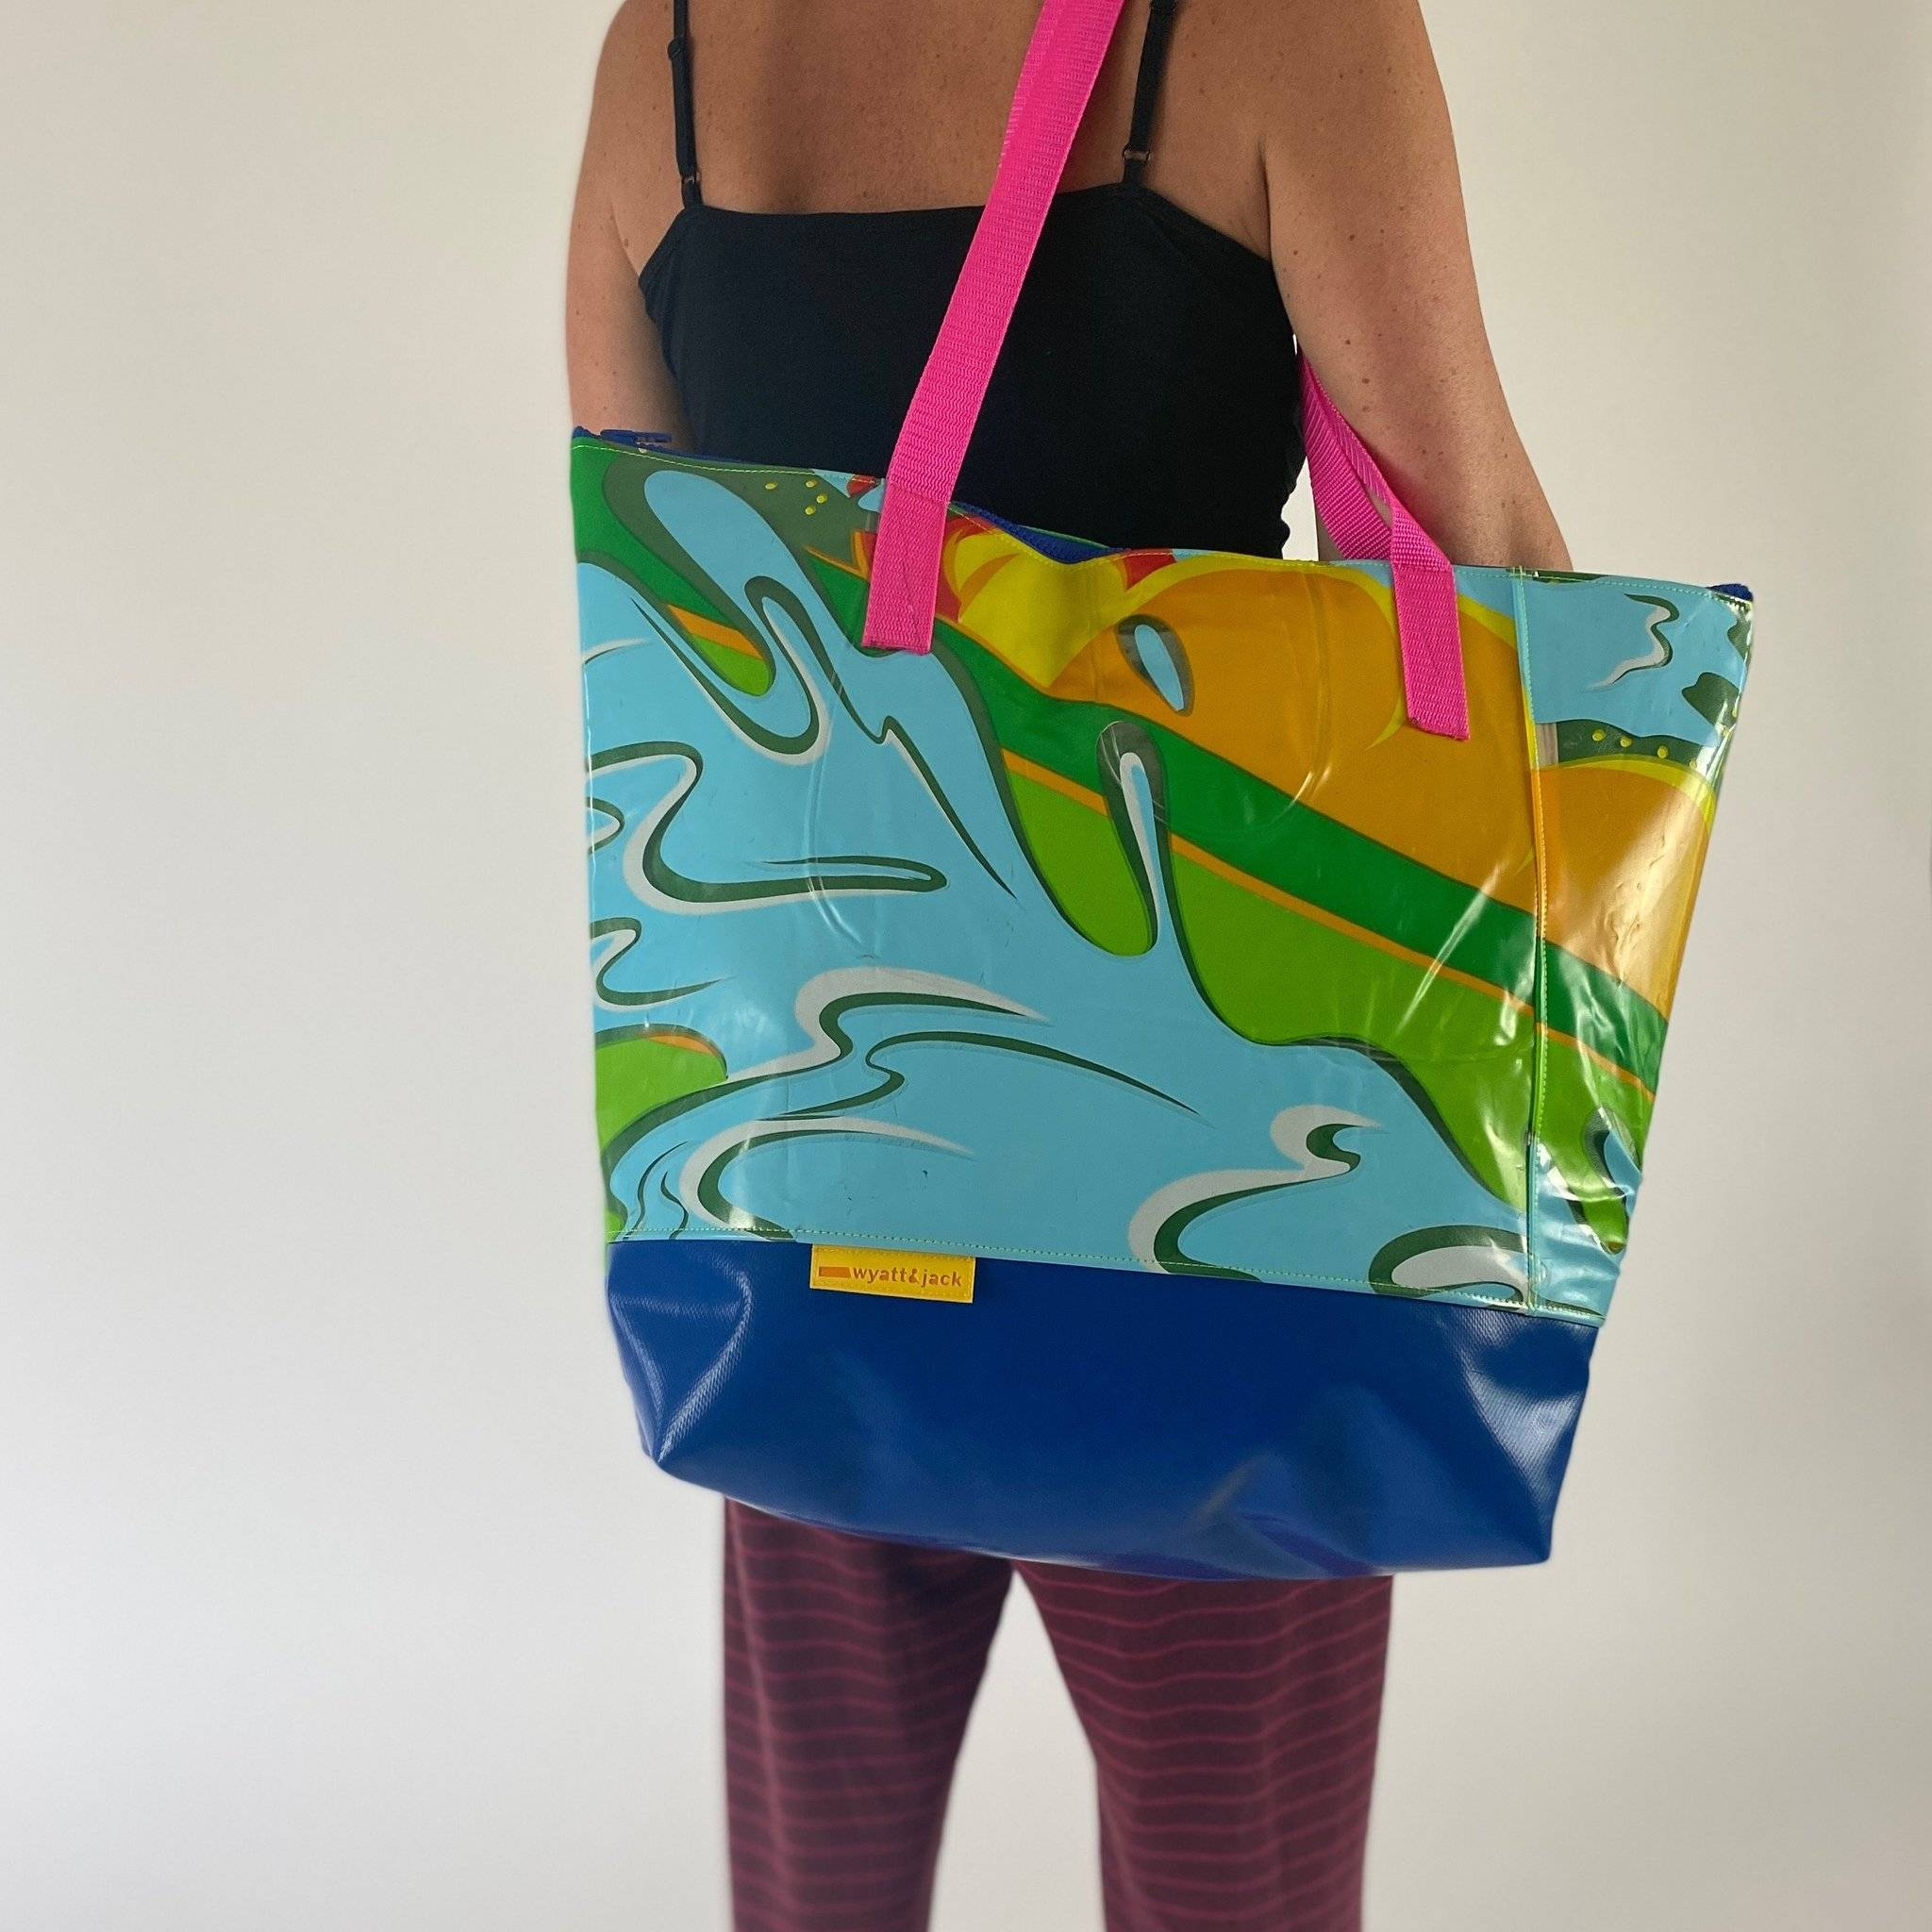 A Wyatt and Jack beach bag made from recycled inflatables